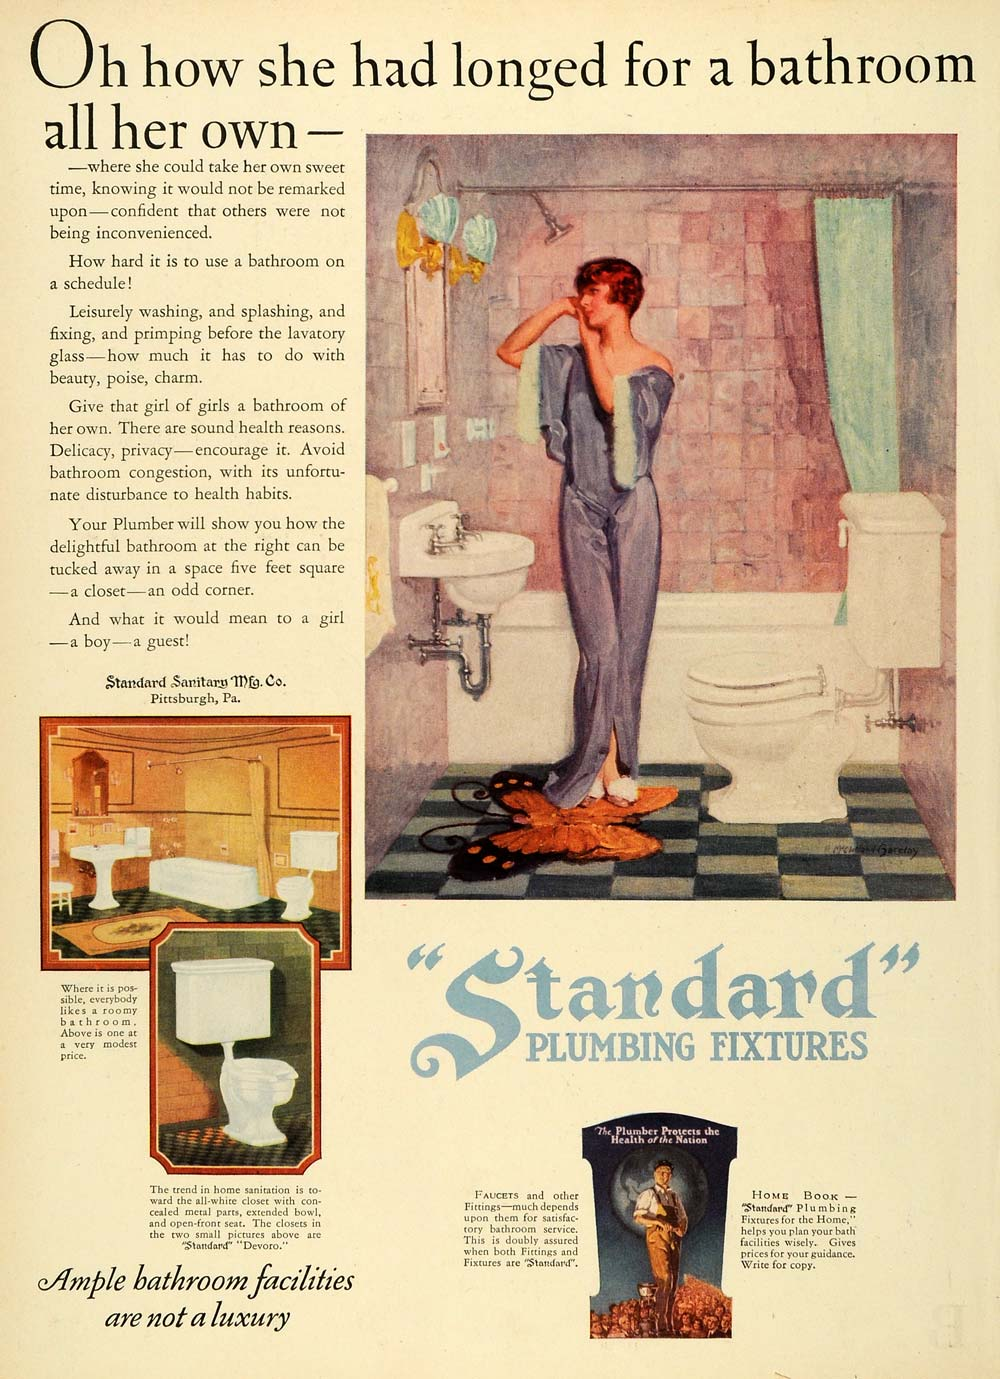 Vintage bathroom ads -  Oh How She Had Longed For A Bathroom All Her Own The